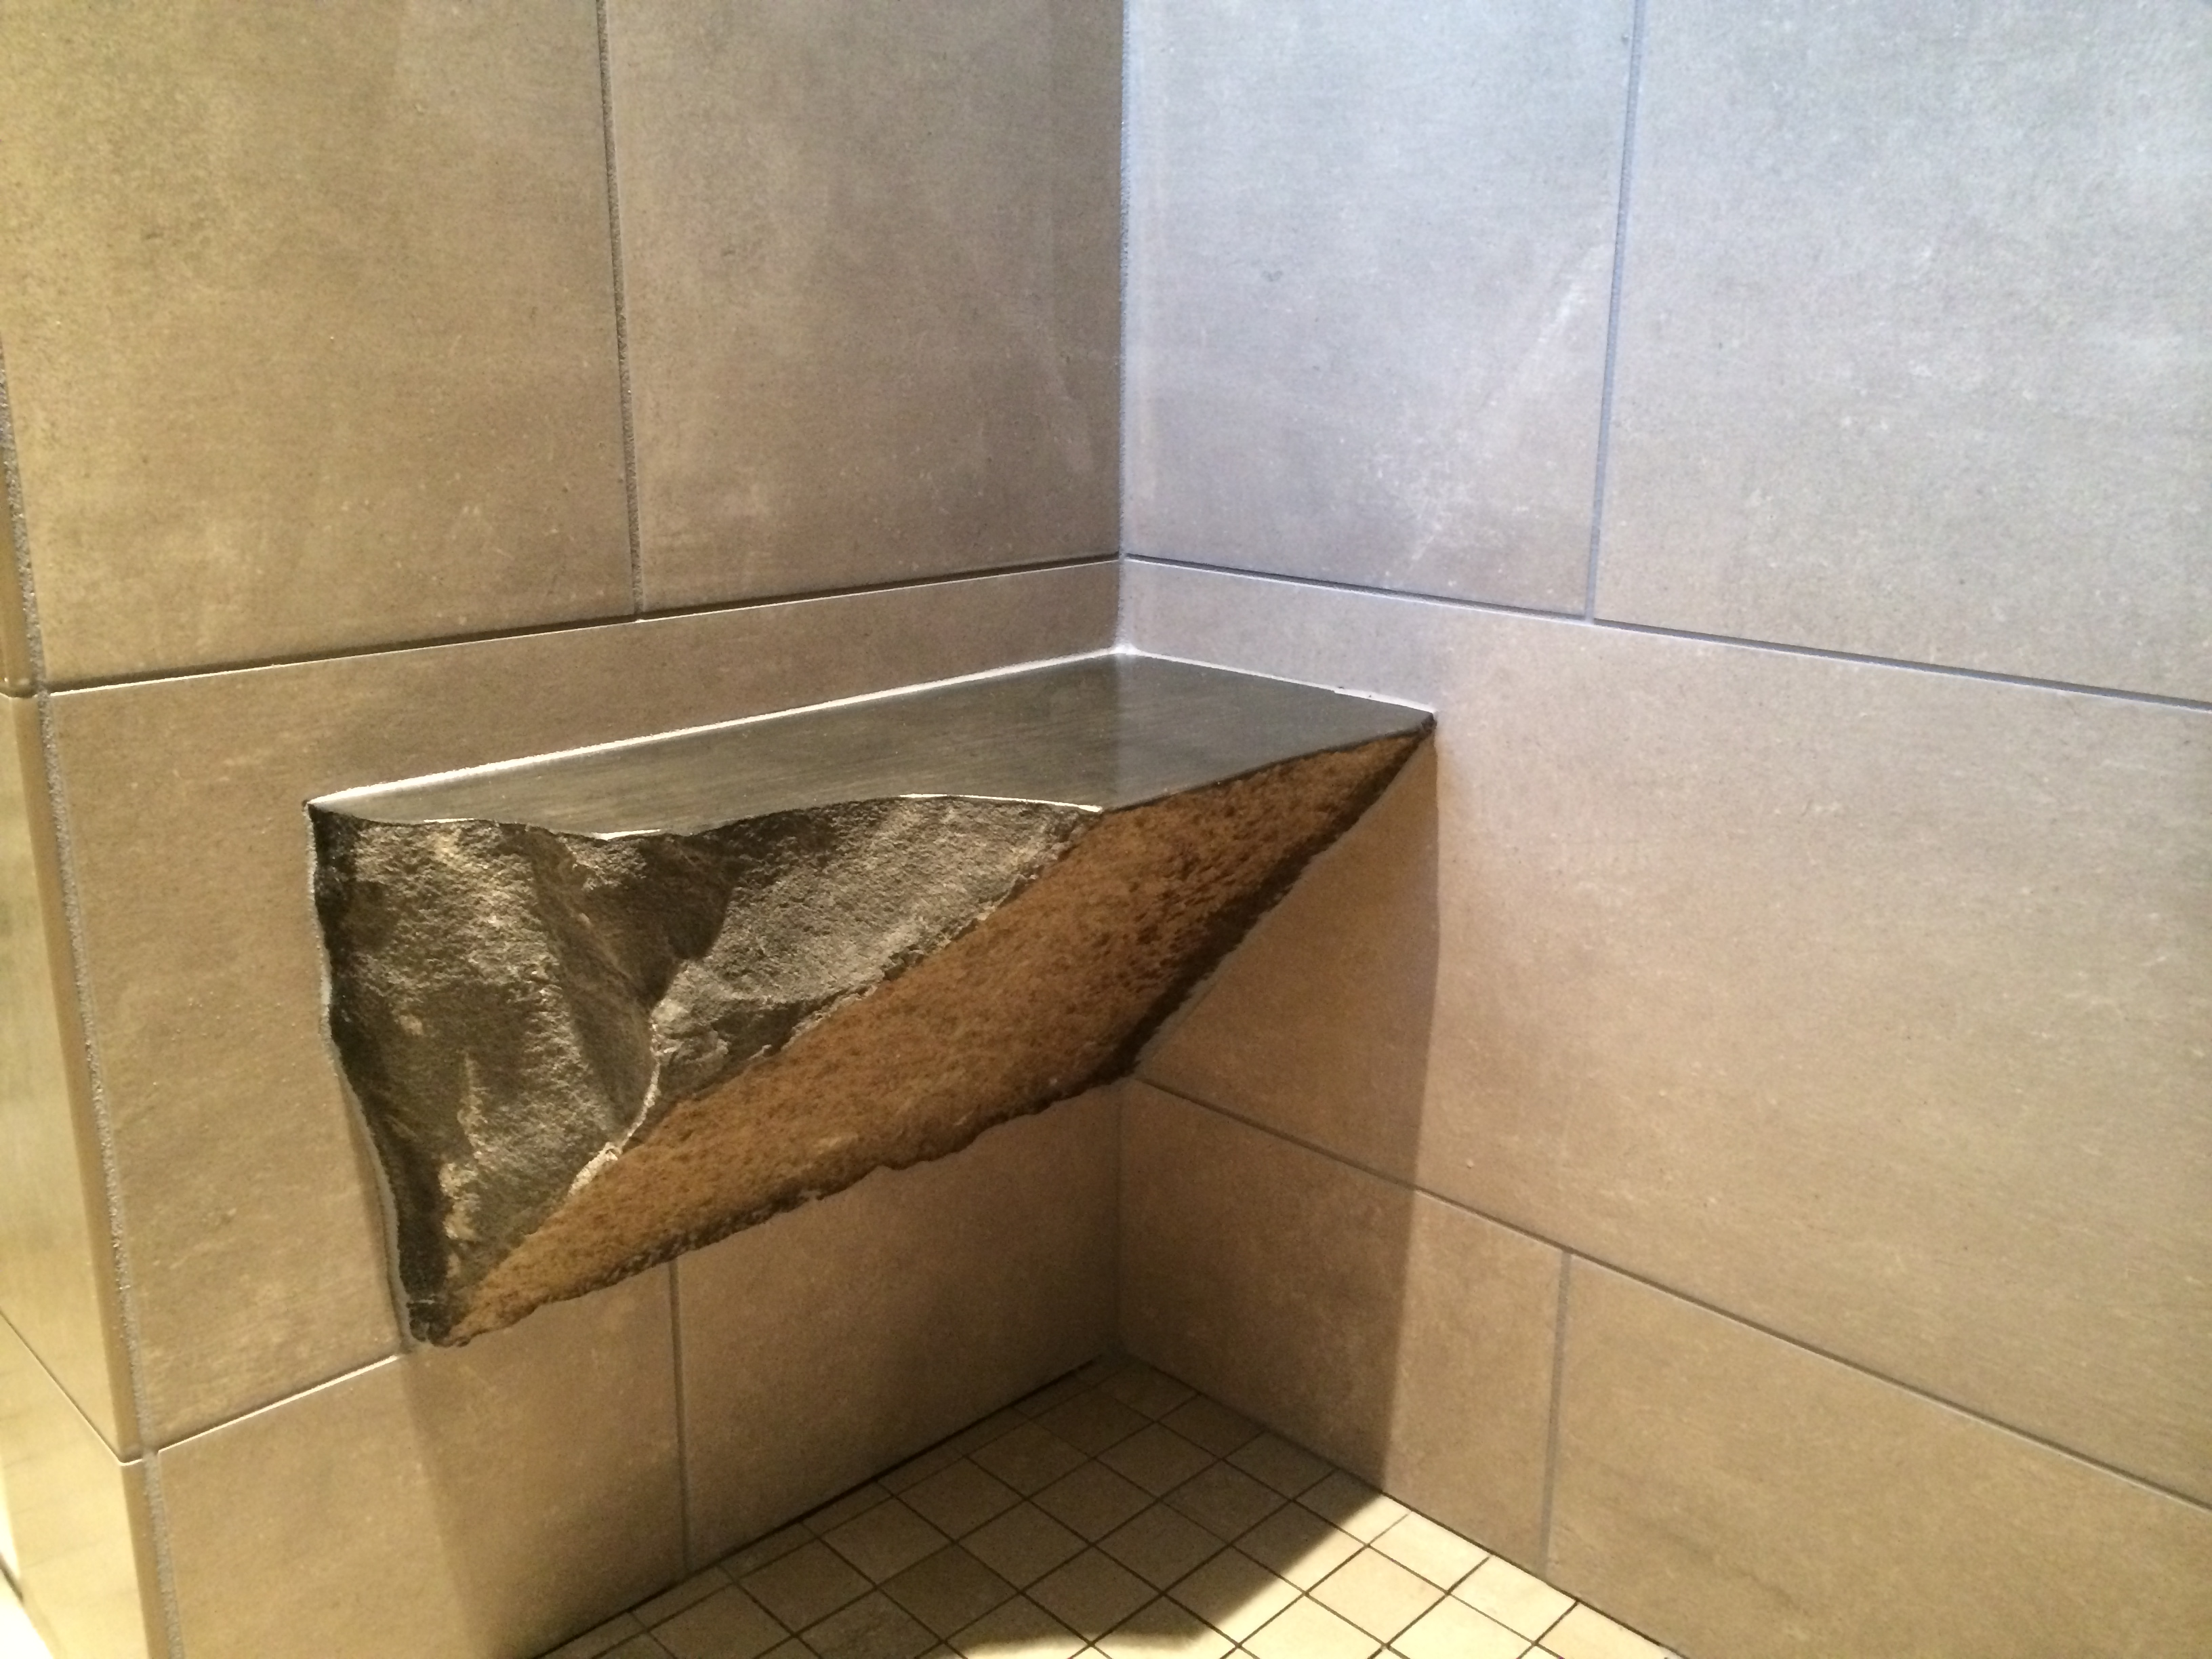 Rock shower bench - Home Construction & Remodel Vancouver, WA